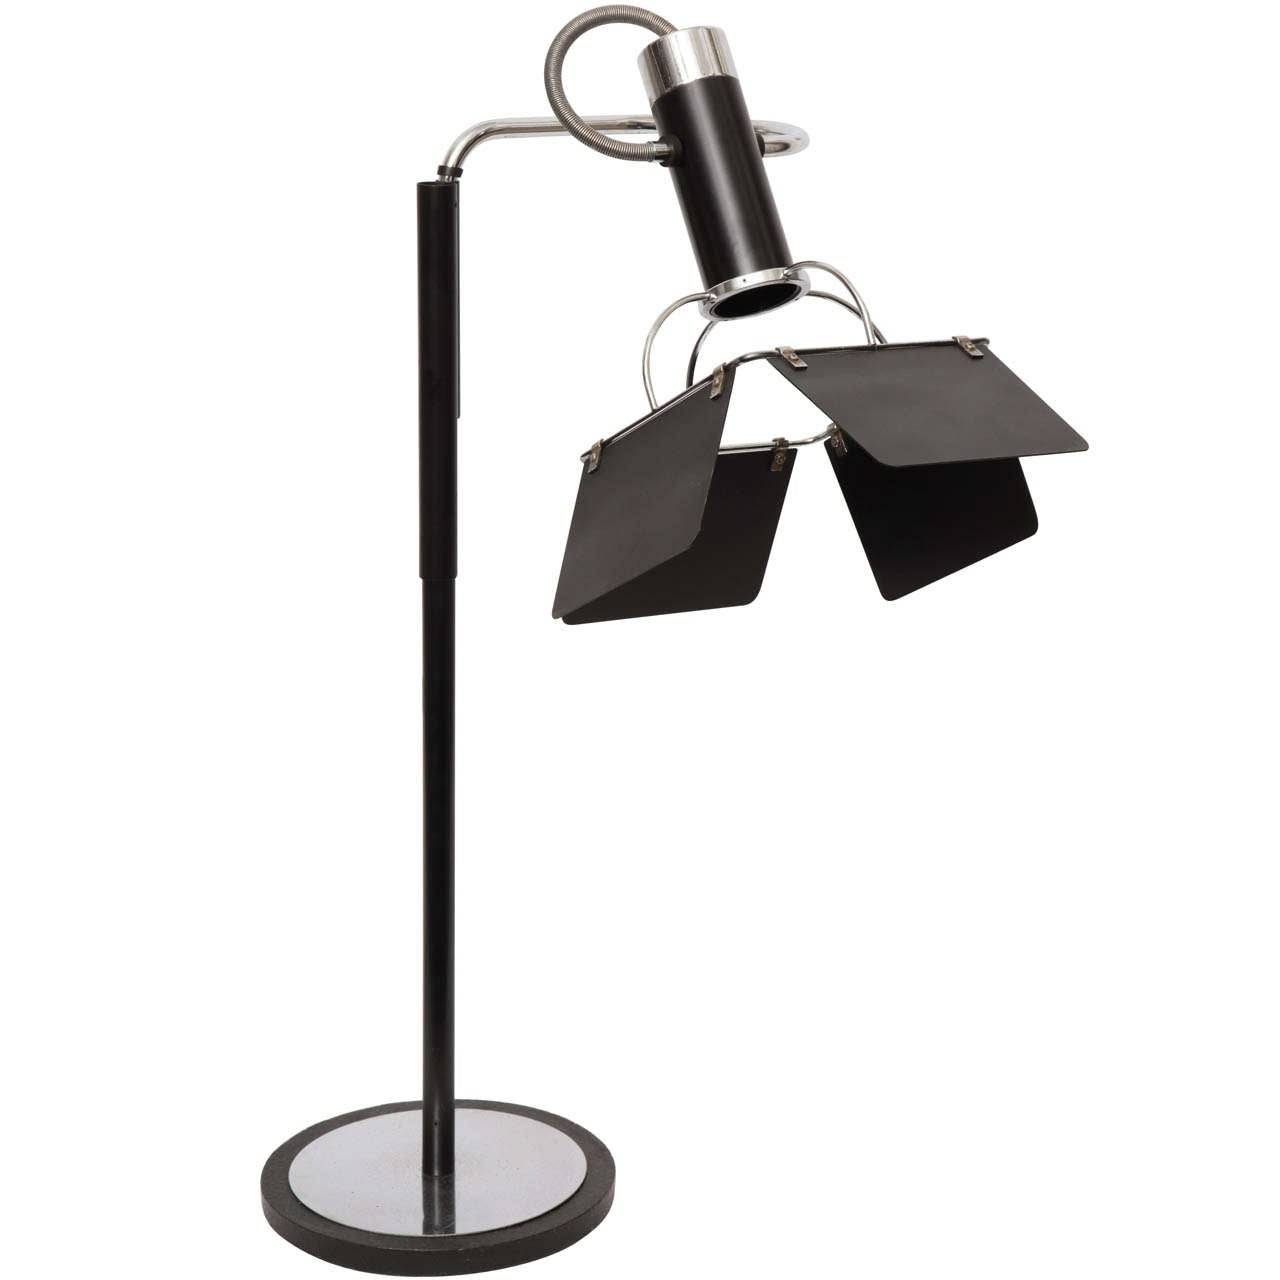 A 1930s American Modernist Articulated Table Lamp